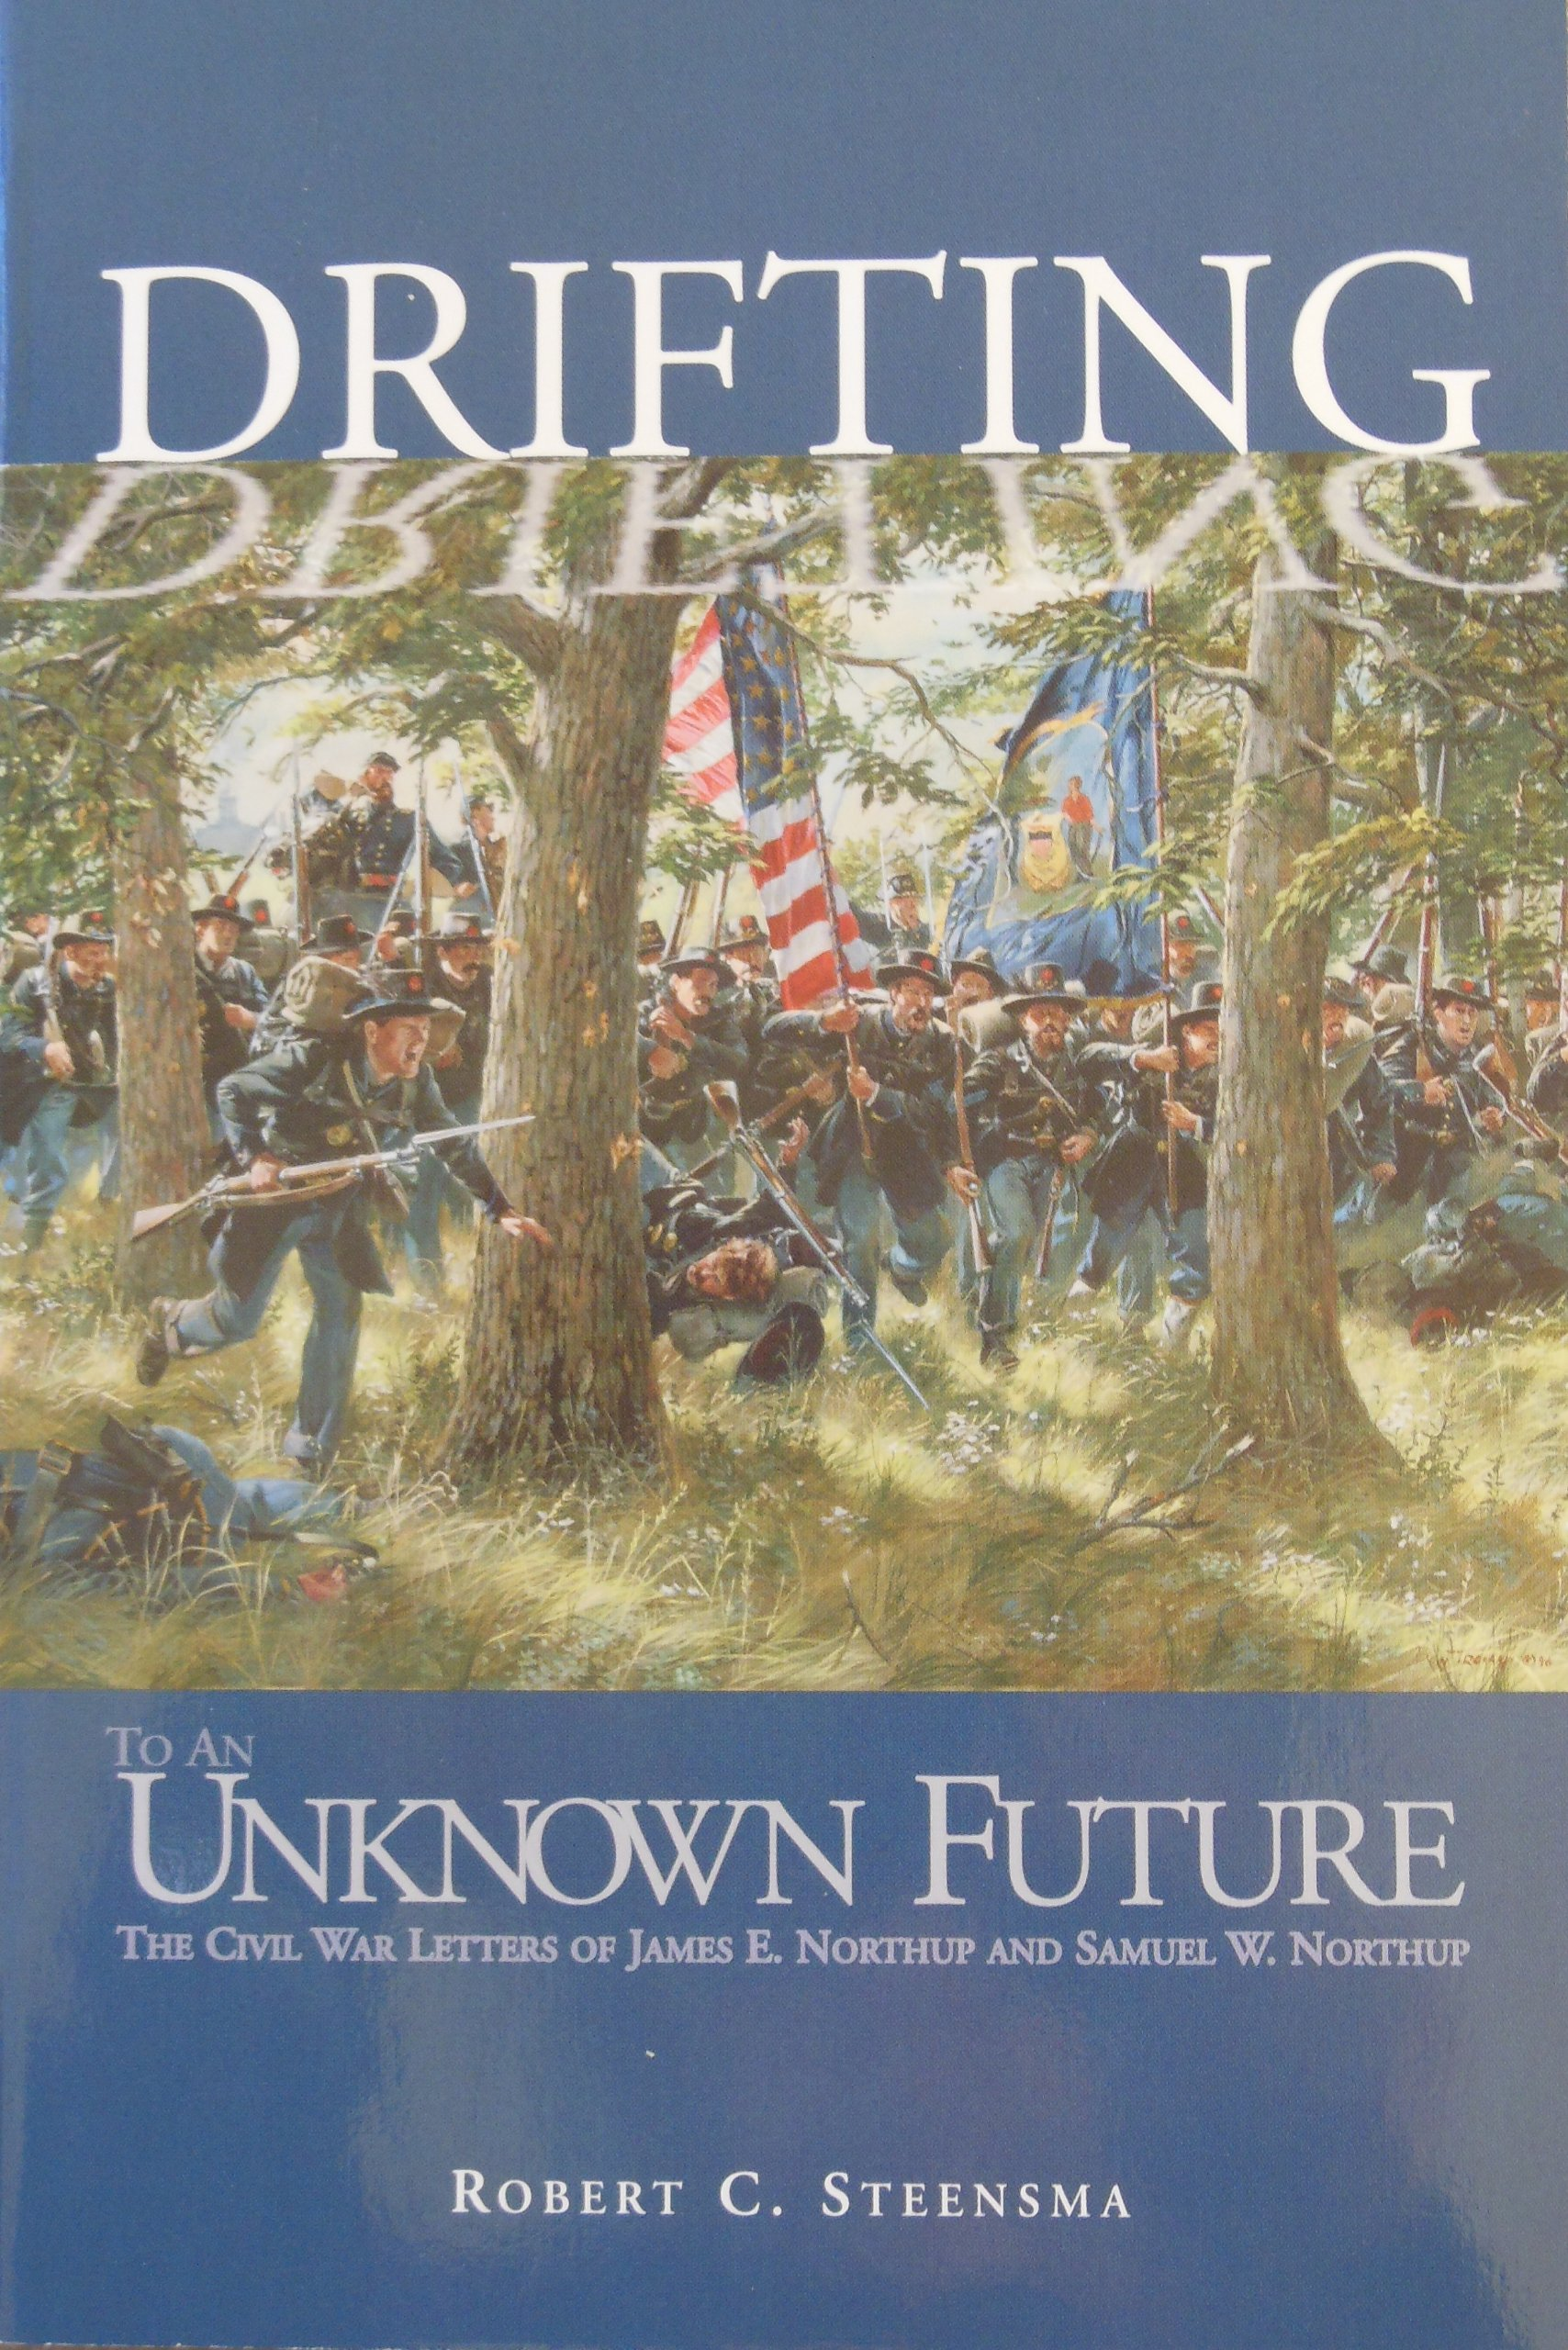 Drifting to an Unknown Future: The Civil War Letters of James E. Northup and Samuel W. Northup (The Prairie Plains Series, No. 7)